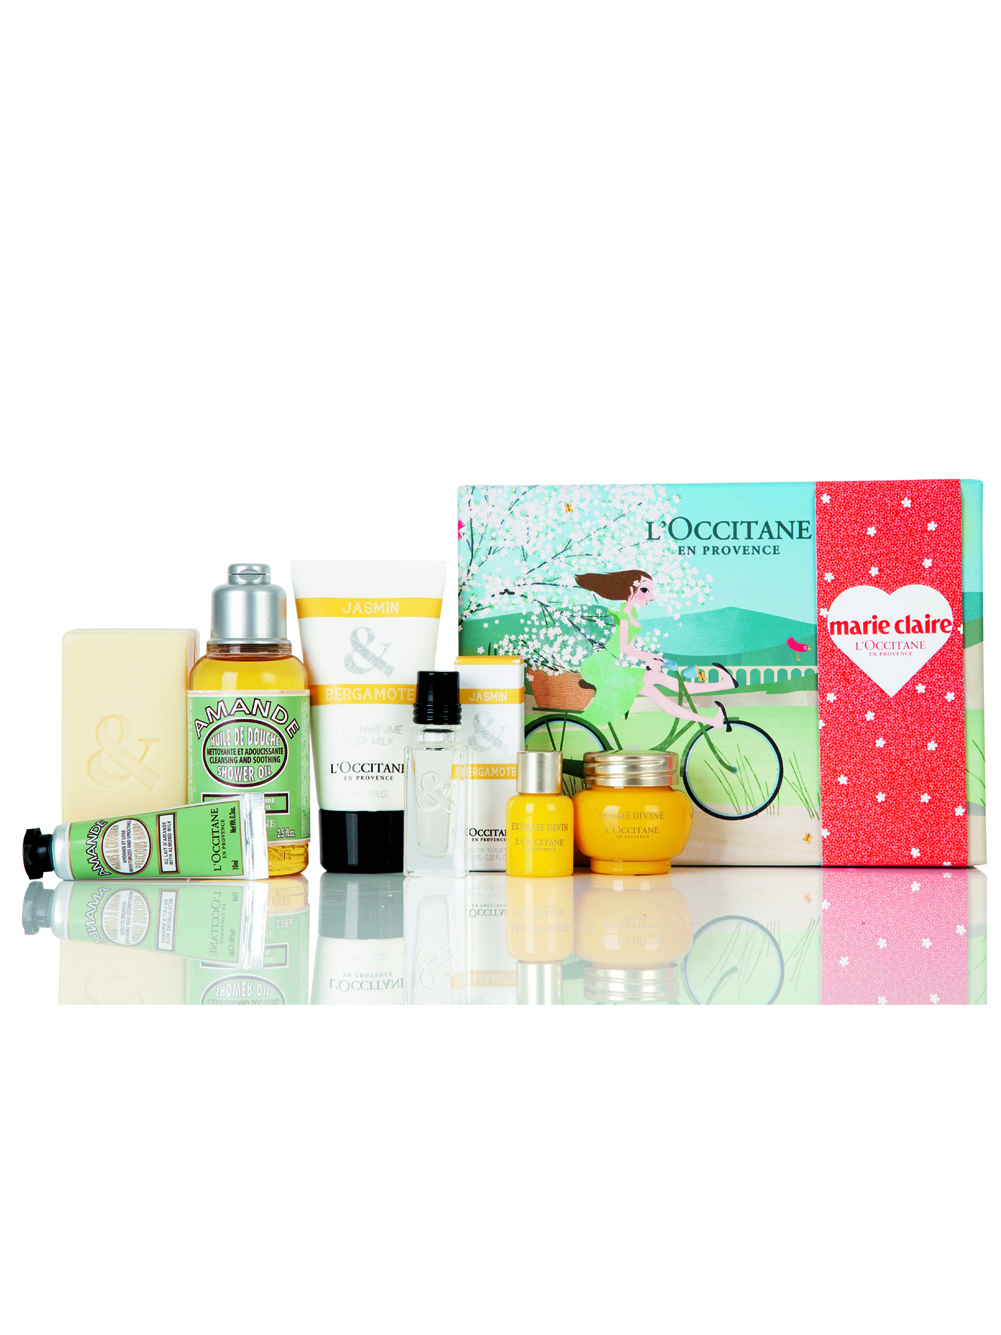 Friday Treat Competition Win L'Occitane Beauty Products Worth 64